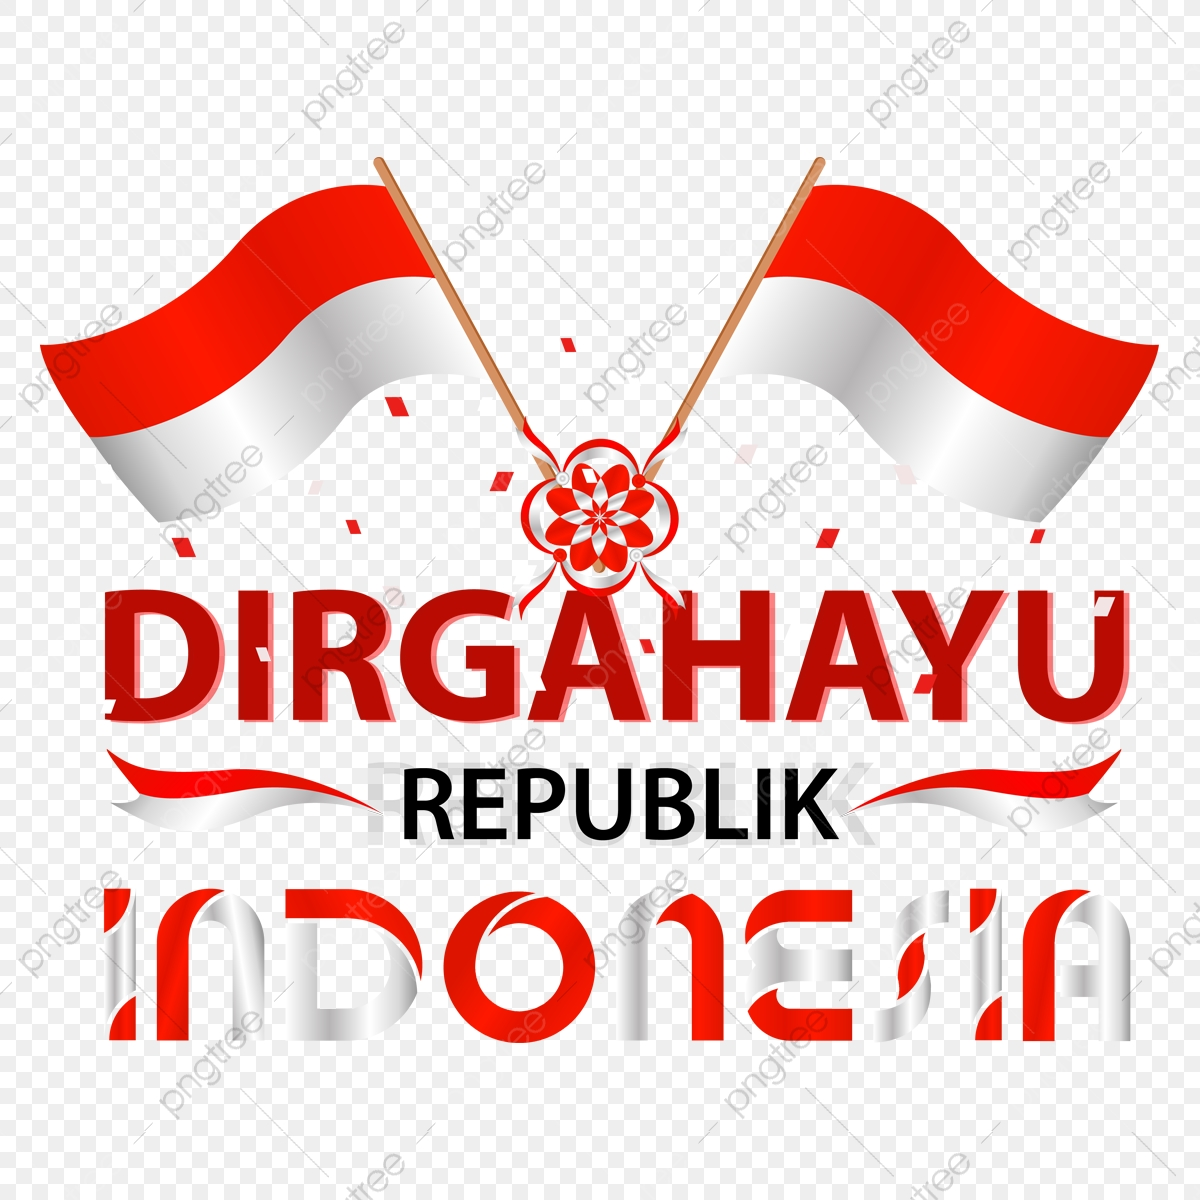 nusantara png images vector and psd files free download on pngtree https pngtree com freepng dirgahayu republik indonesia 5488309 html